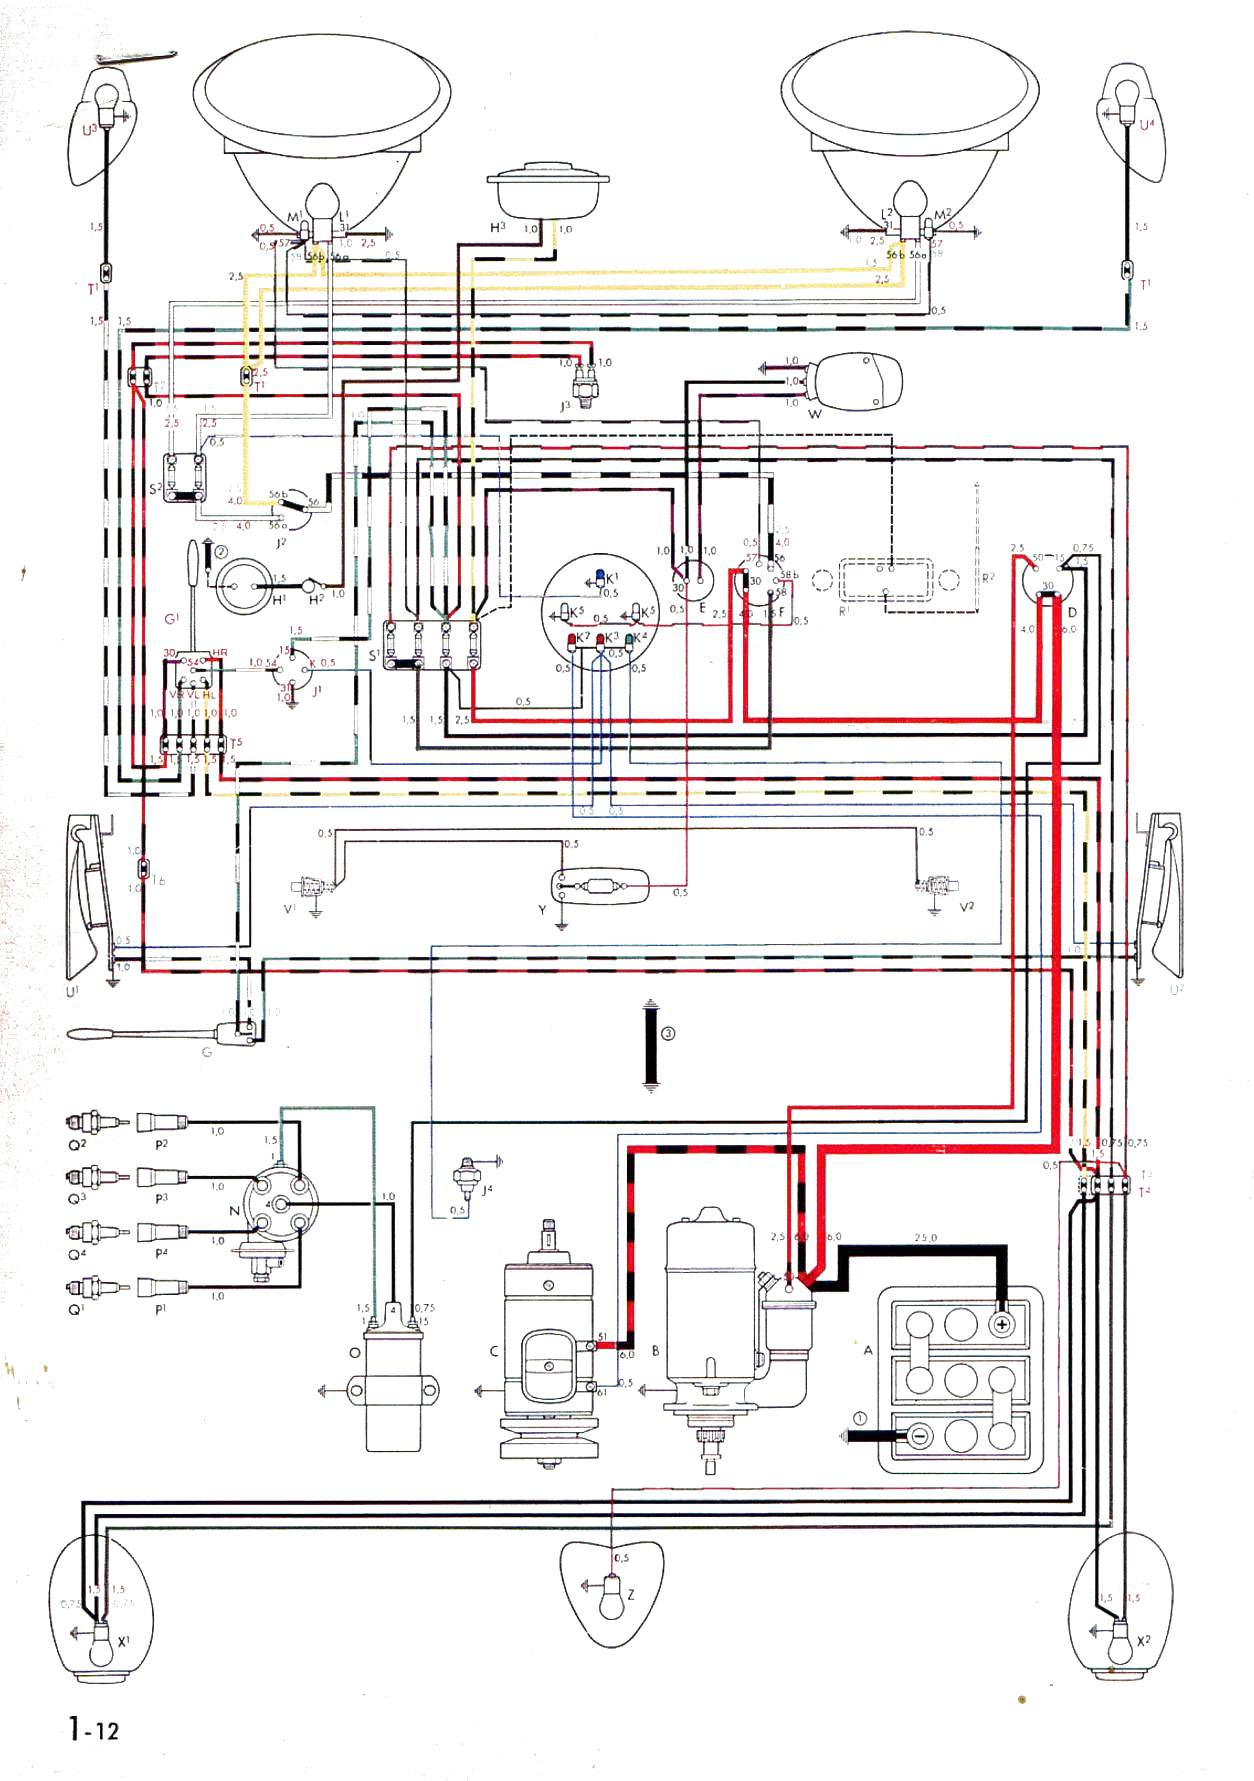 Wiring Diagram For 1982 Ford Ambulance 38 Images 1978 Mack Wire Bug 55 57 Vintagebus Com Vw Bus And Other Diagrams Disconnect Switch